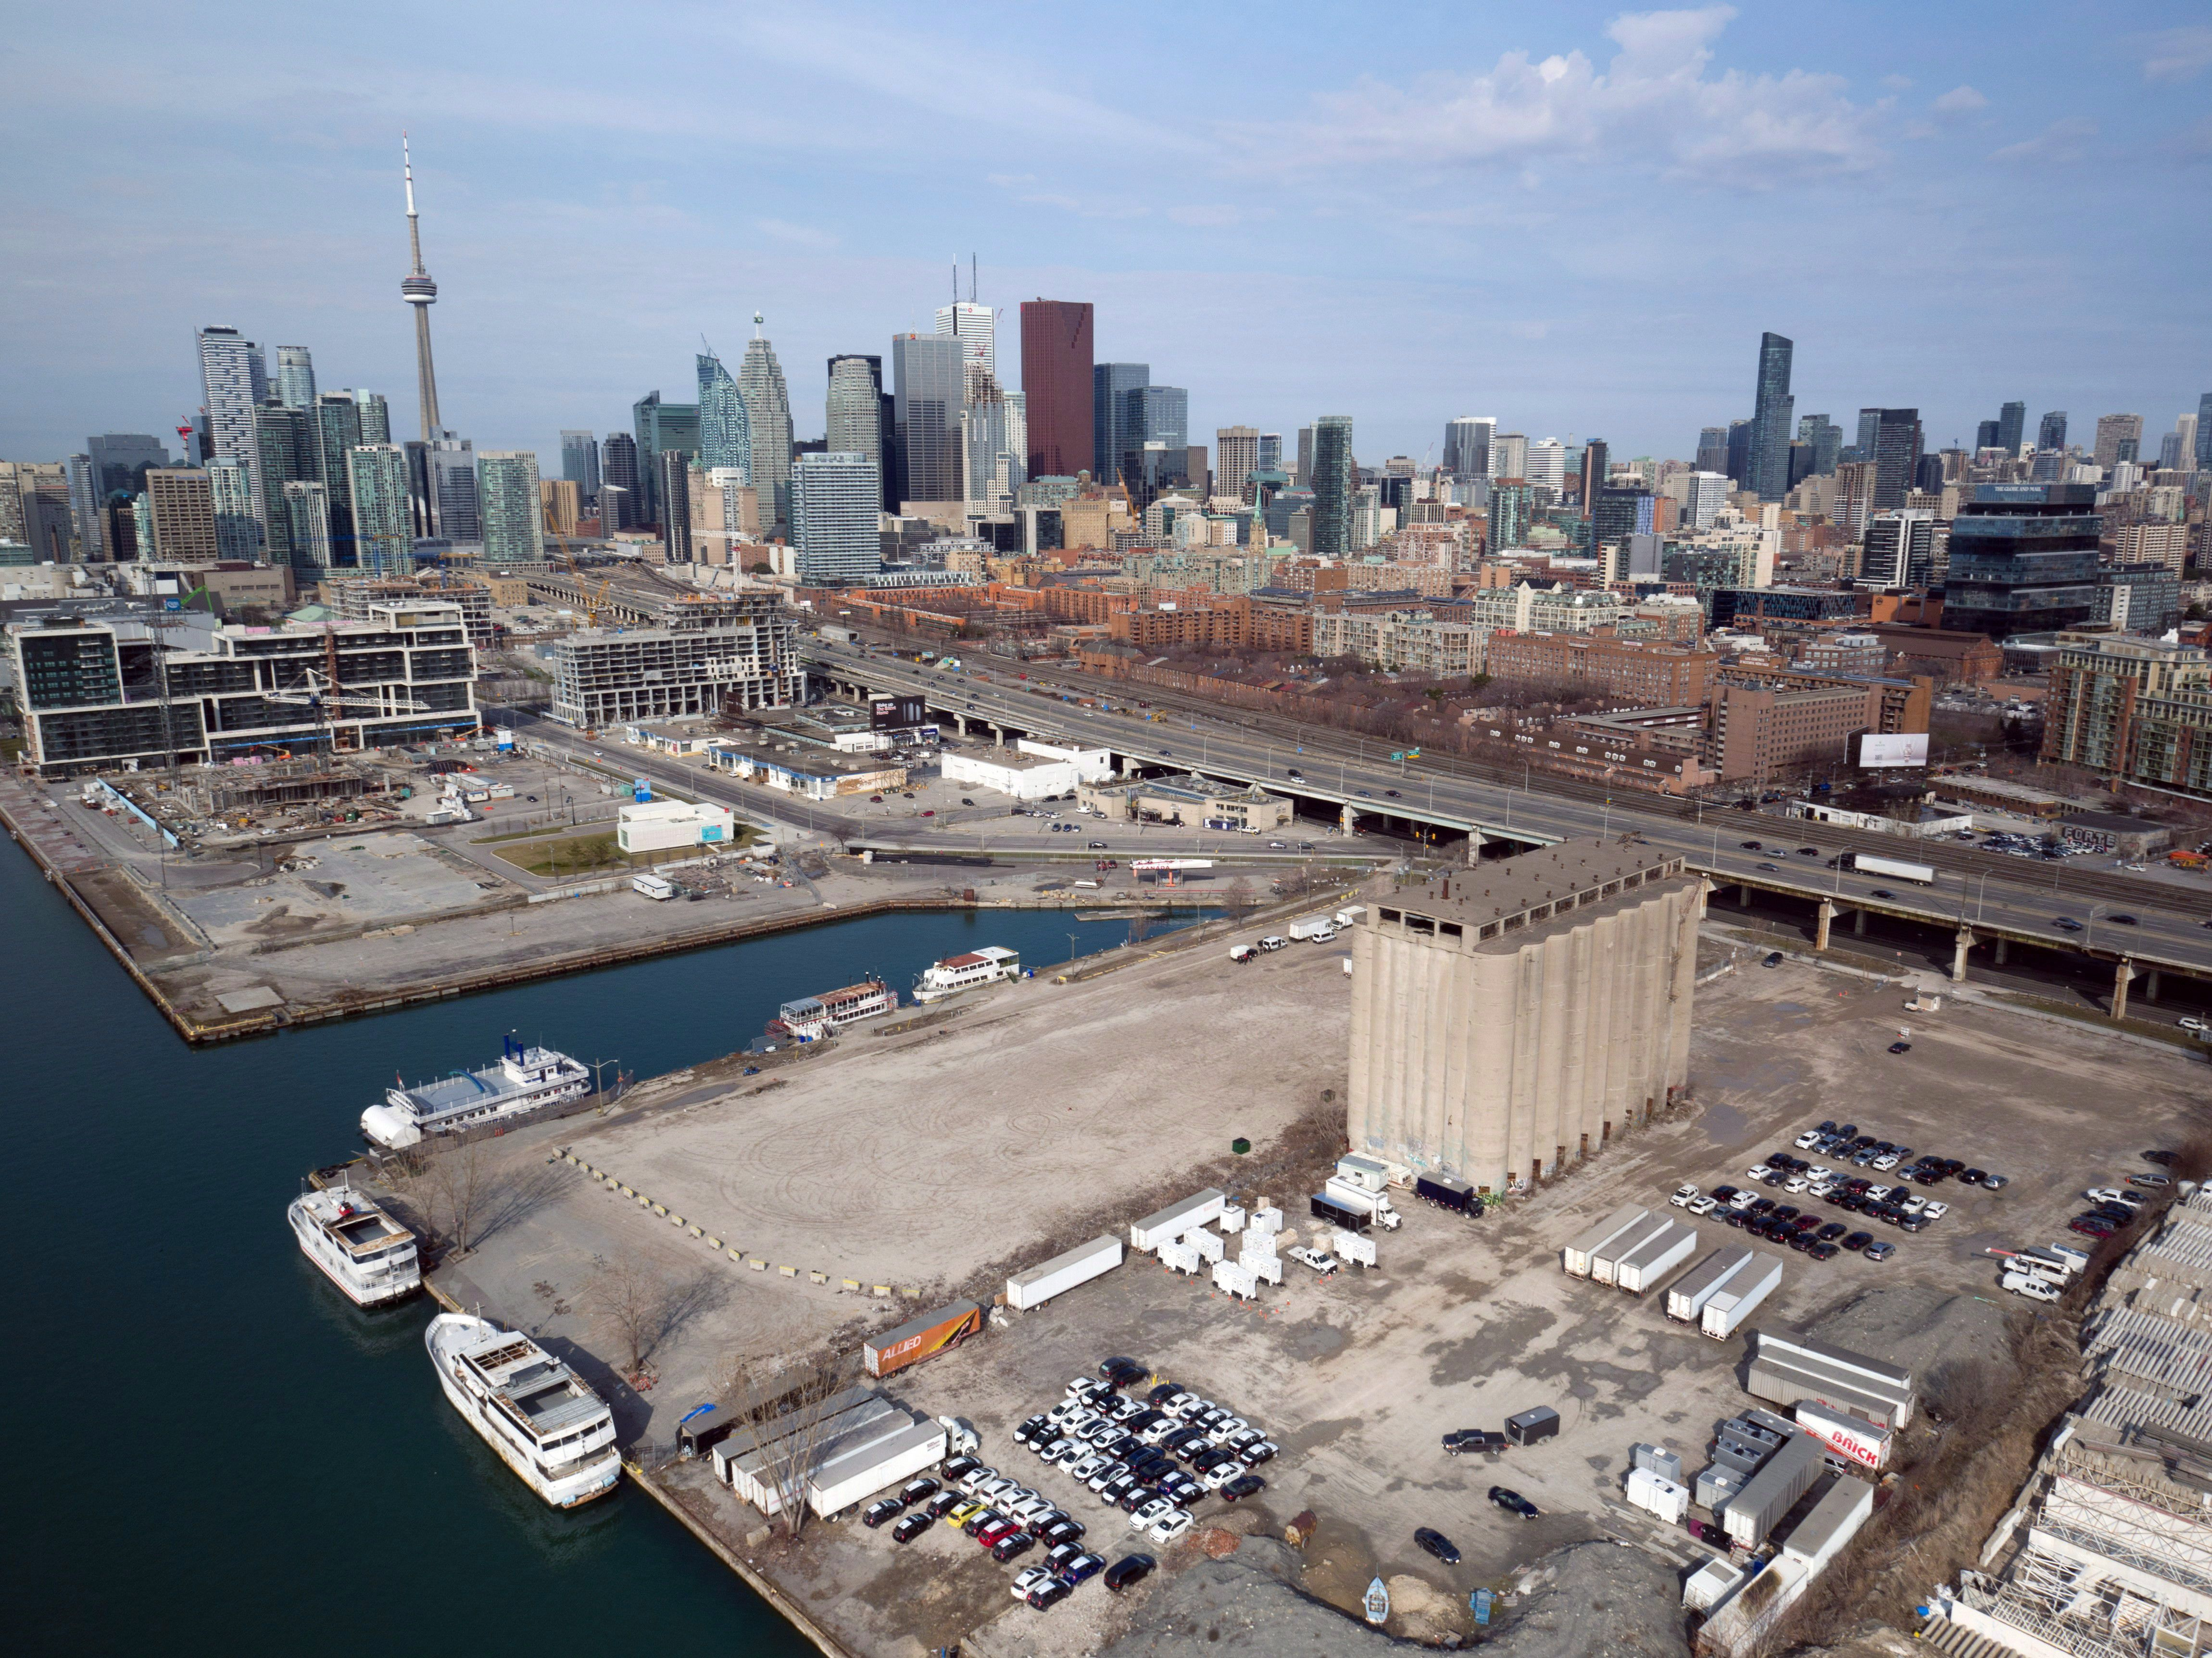 In the conversation around Sidewalk Labs, Toronto can – and will – stand its ground